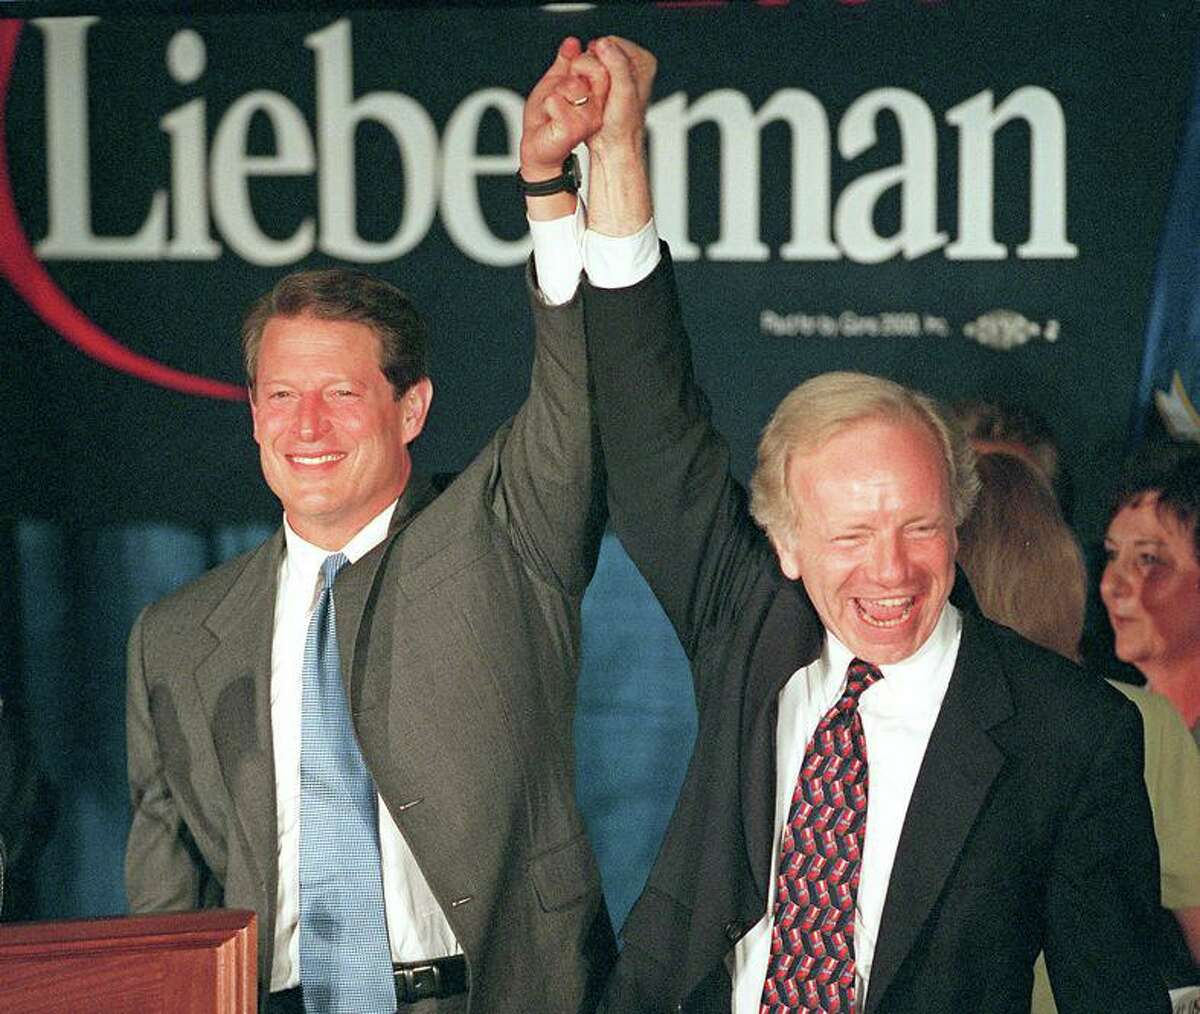 Vice President Al Gore and Senator Joseph Lieberman make a stop in Connecticut at the Italian Center in Stamford Aug. 9, 2000.